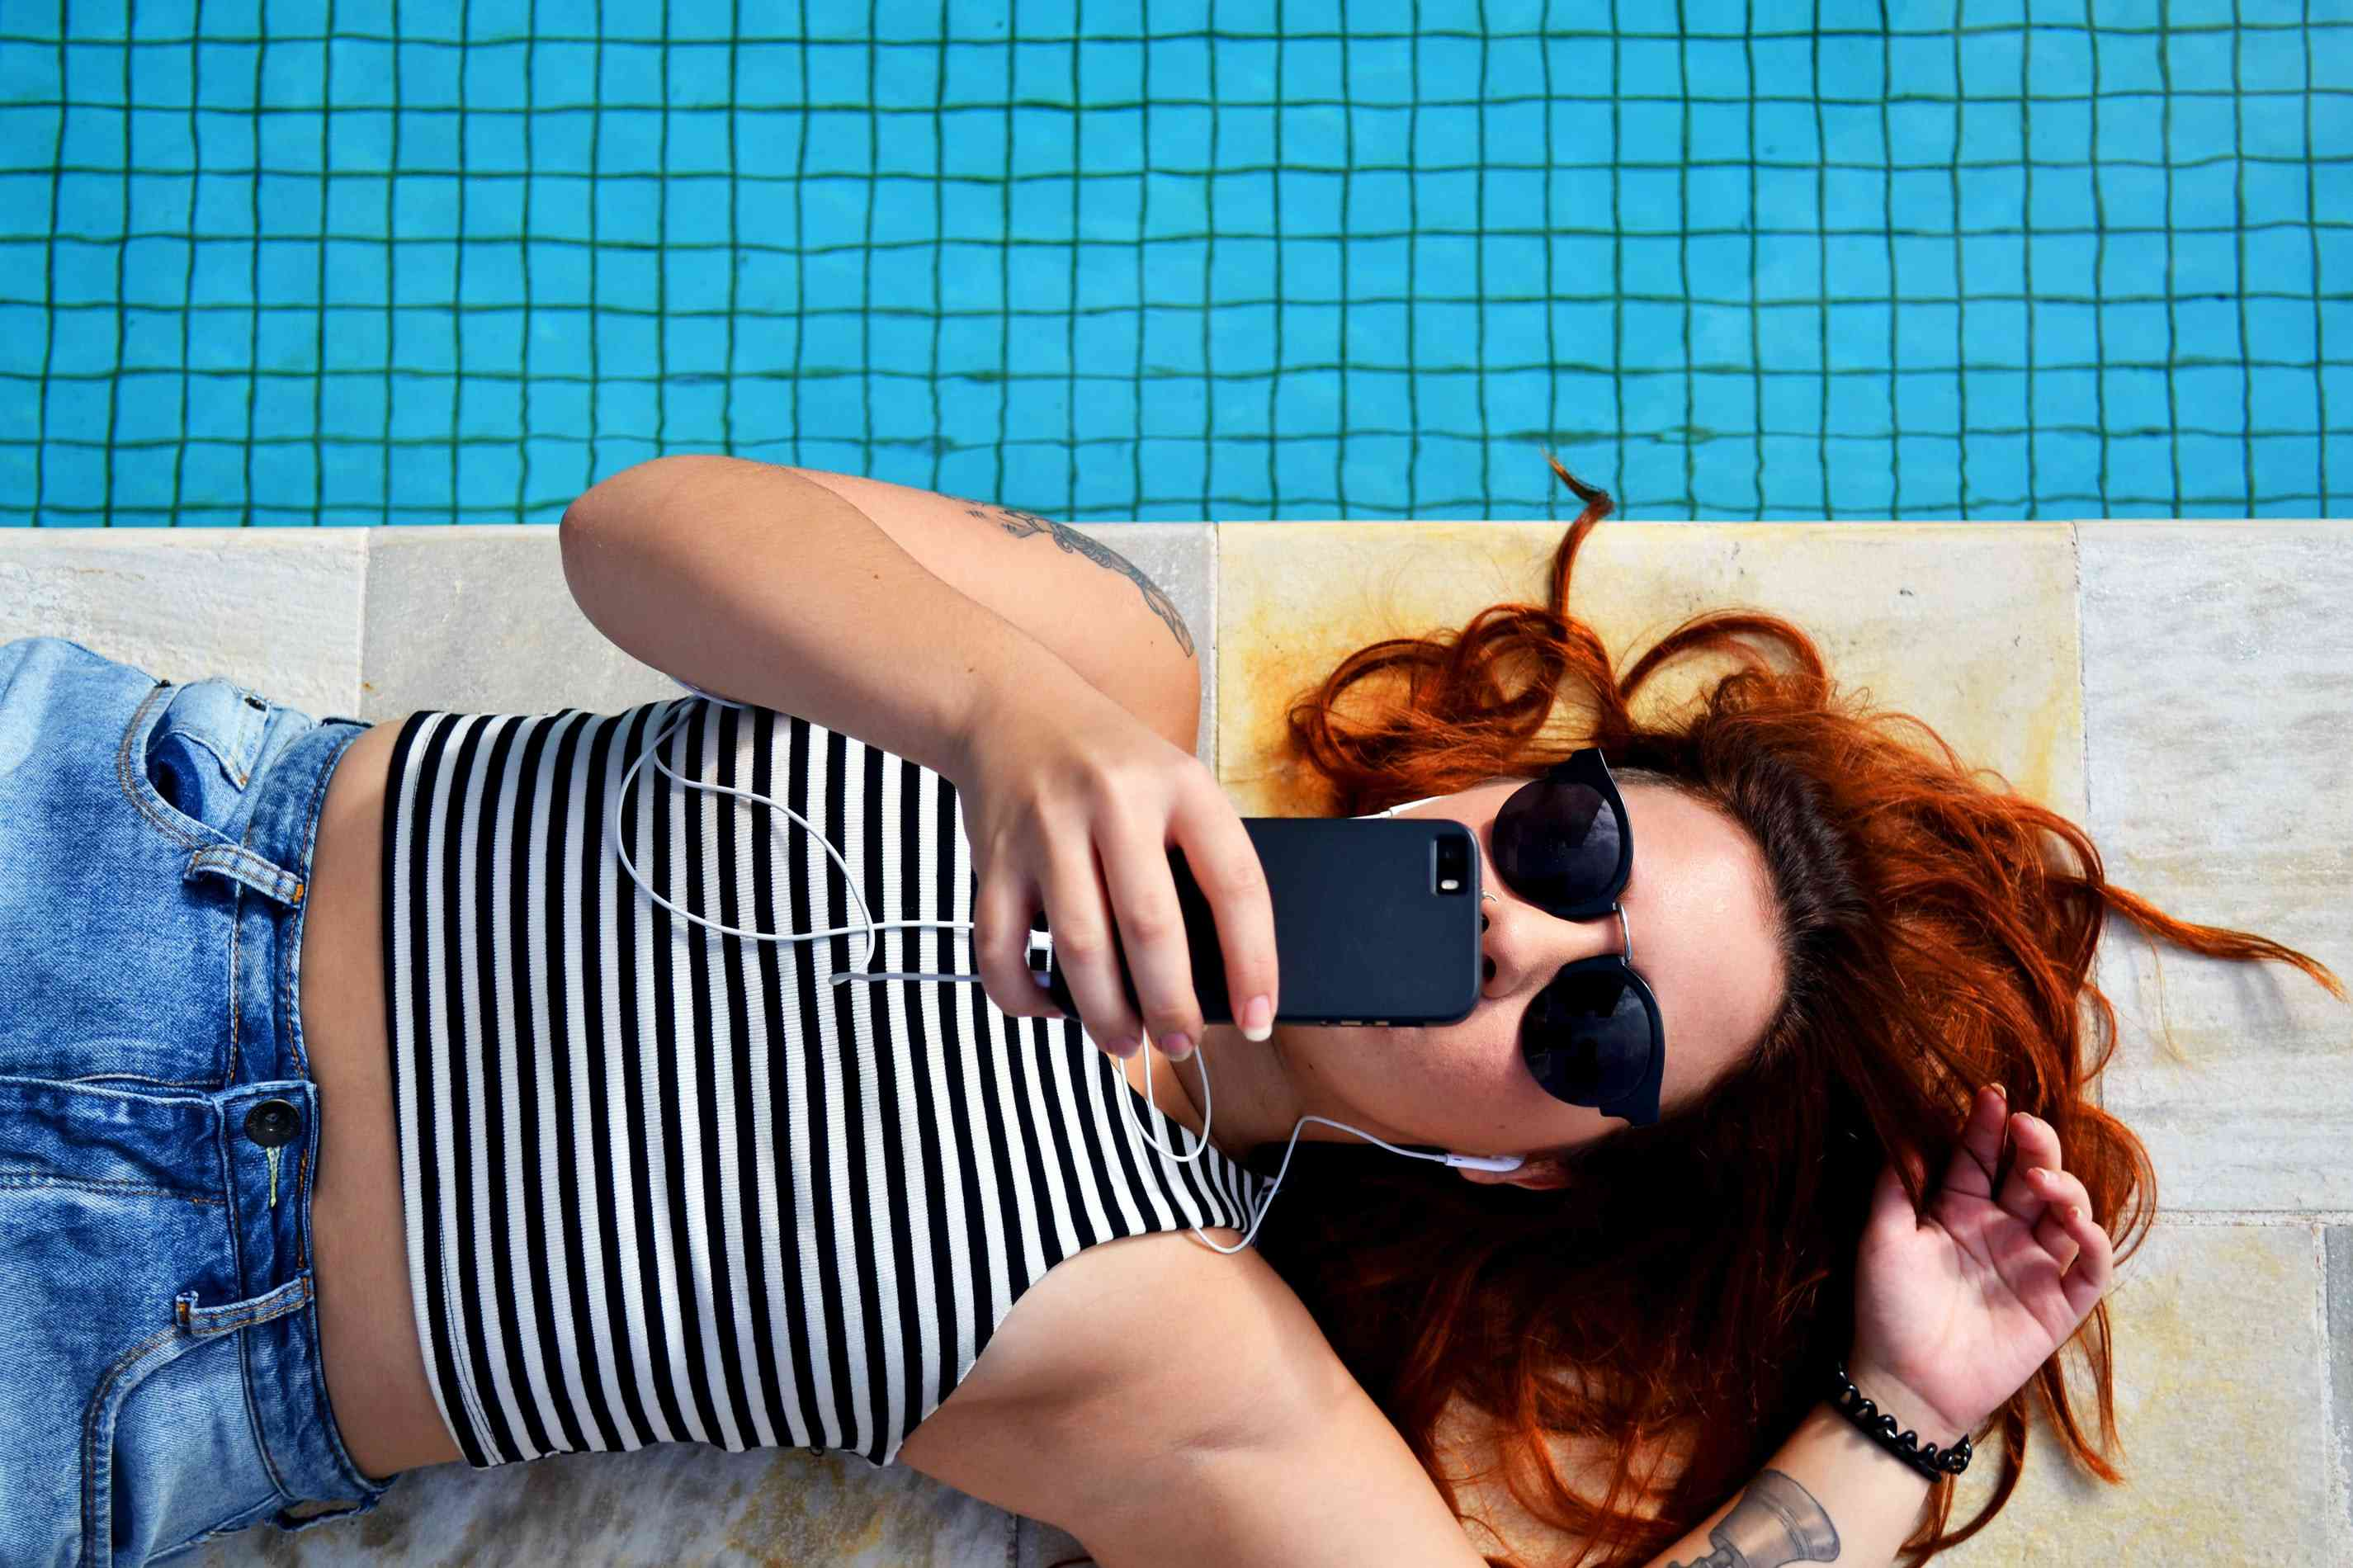 Woman lying next to a pool and listening to their phone